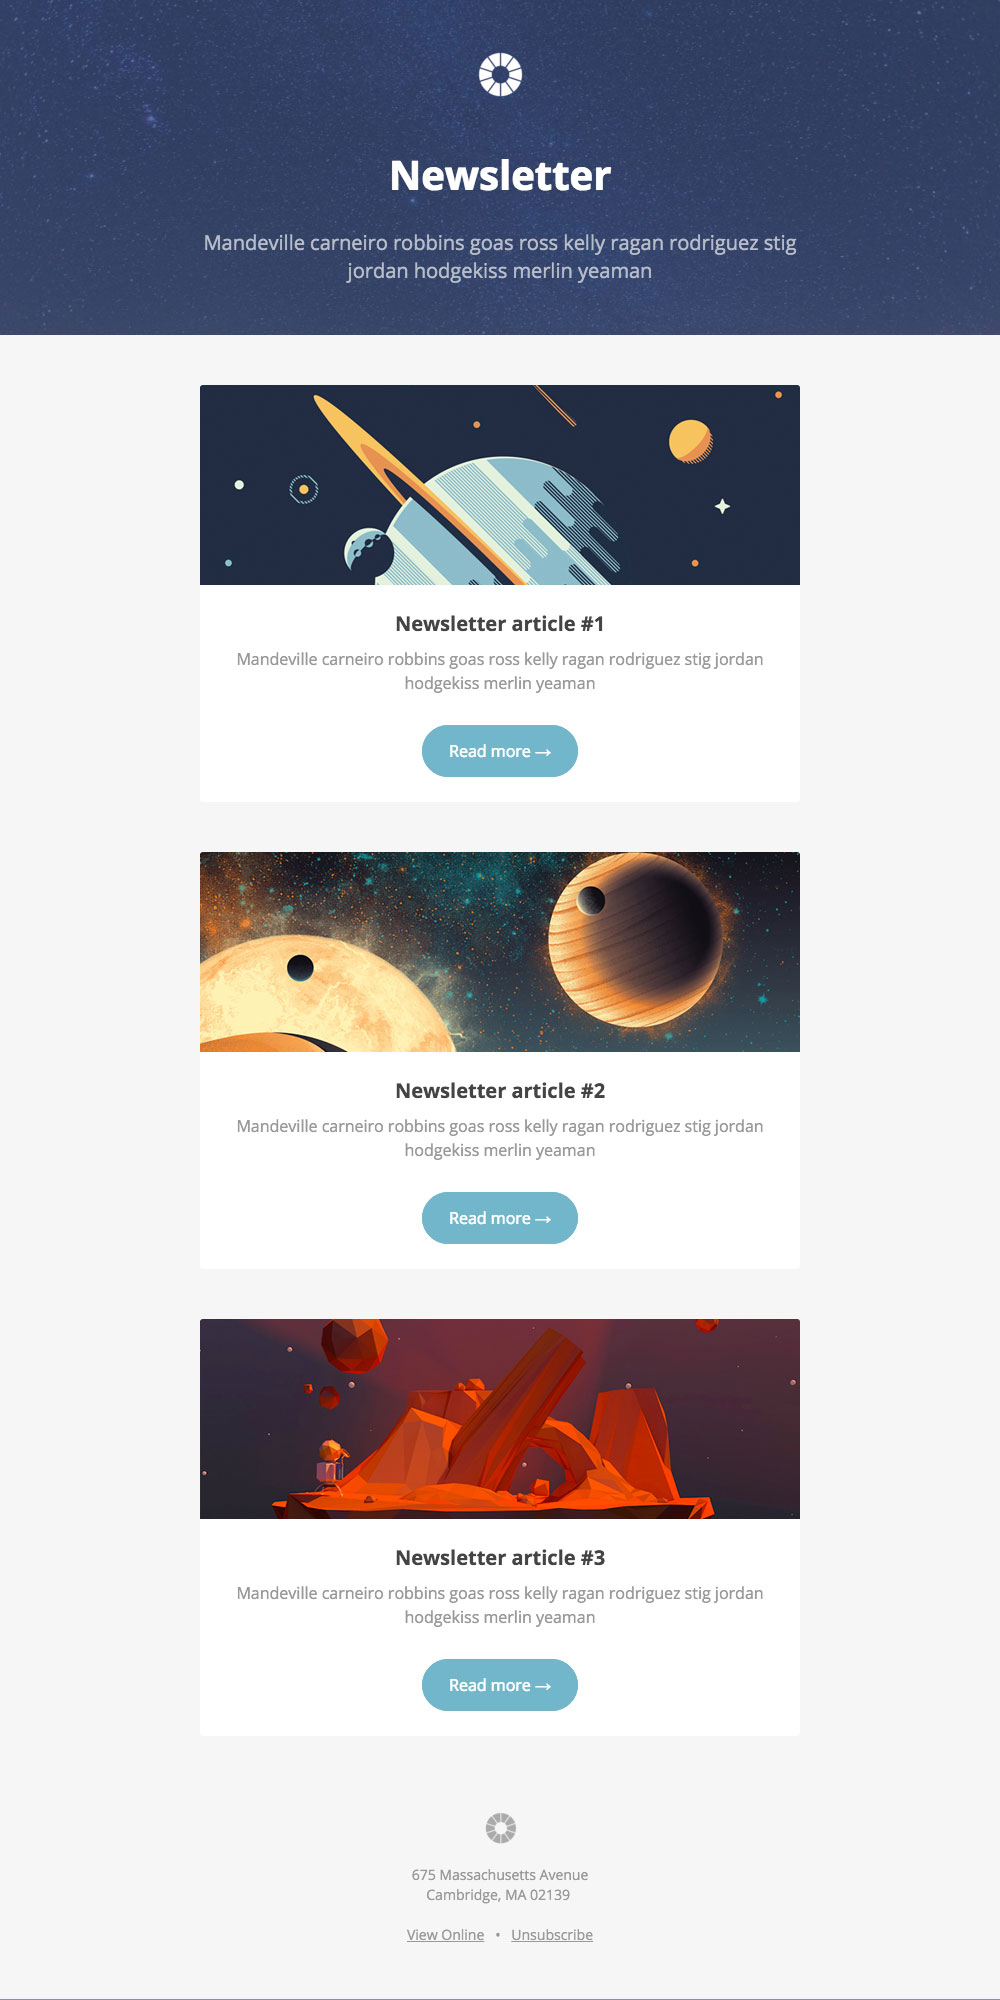 Free Email Templates From Litmus Litmus Software Inc - Litmus free email templates